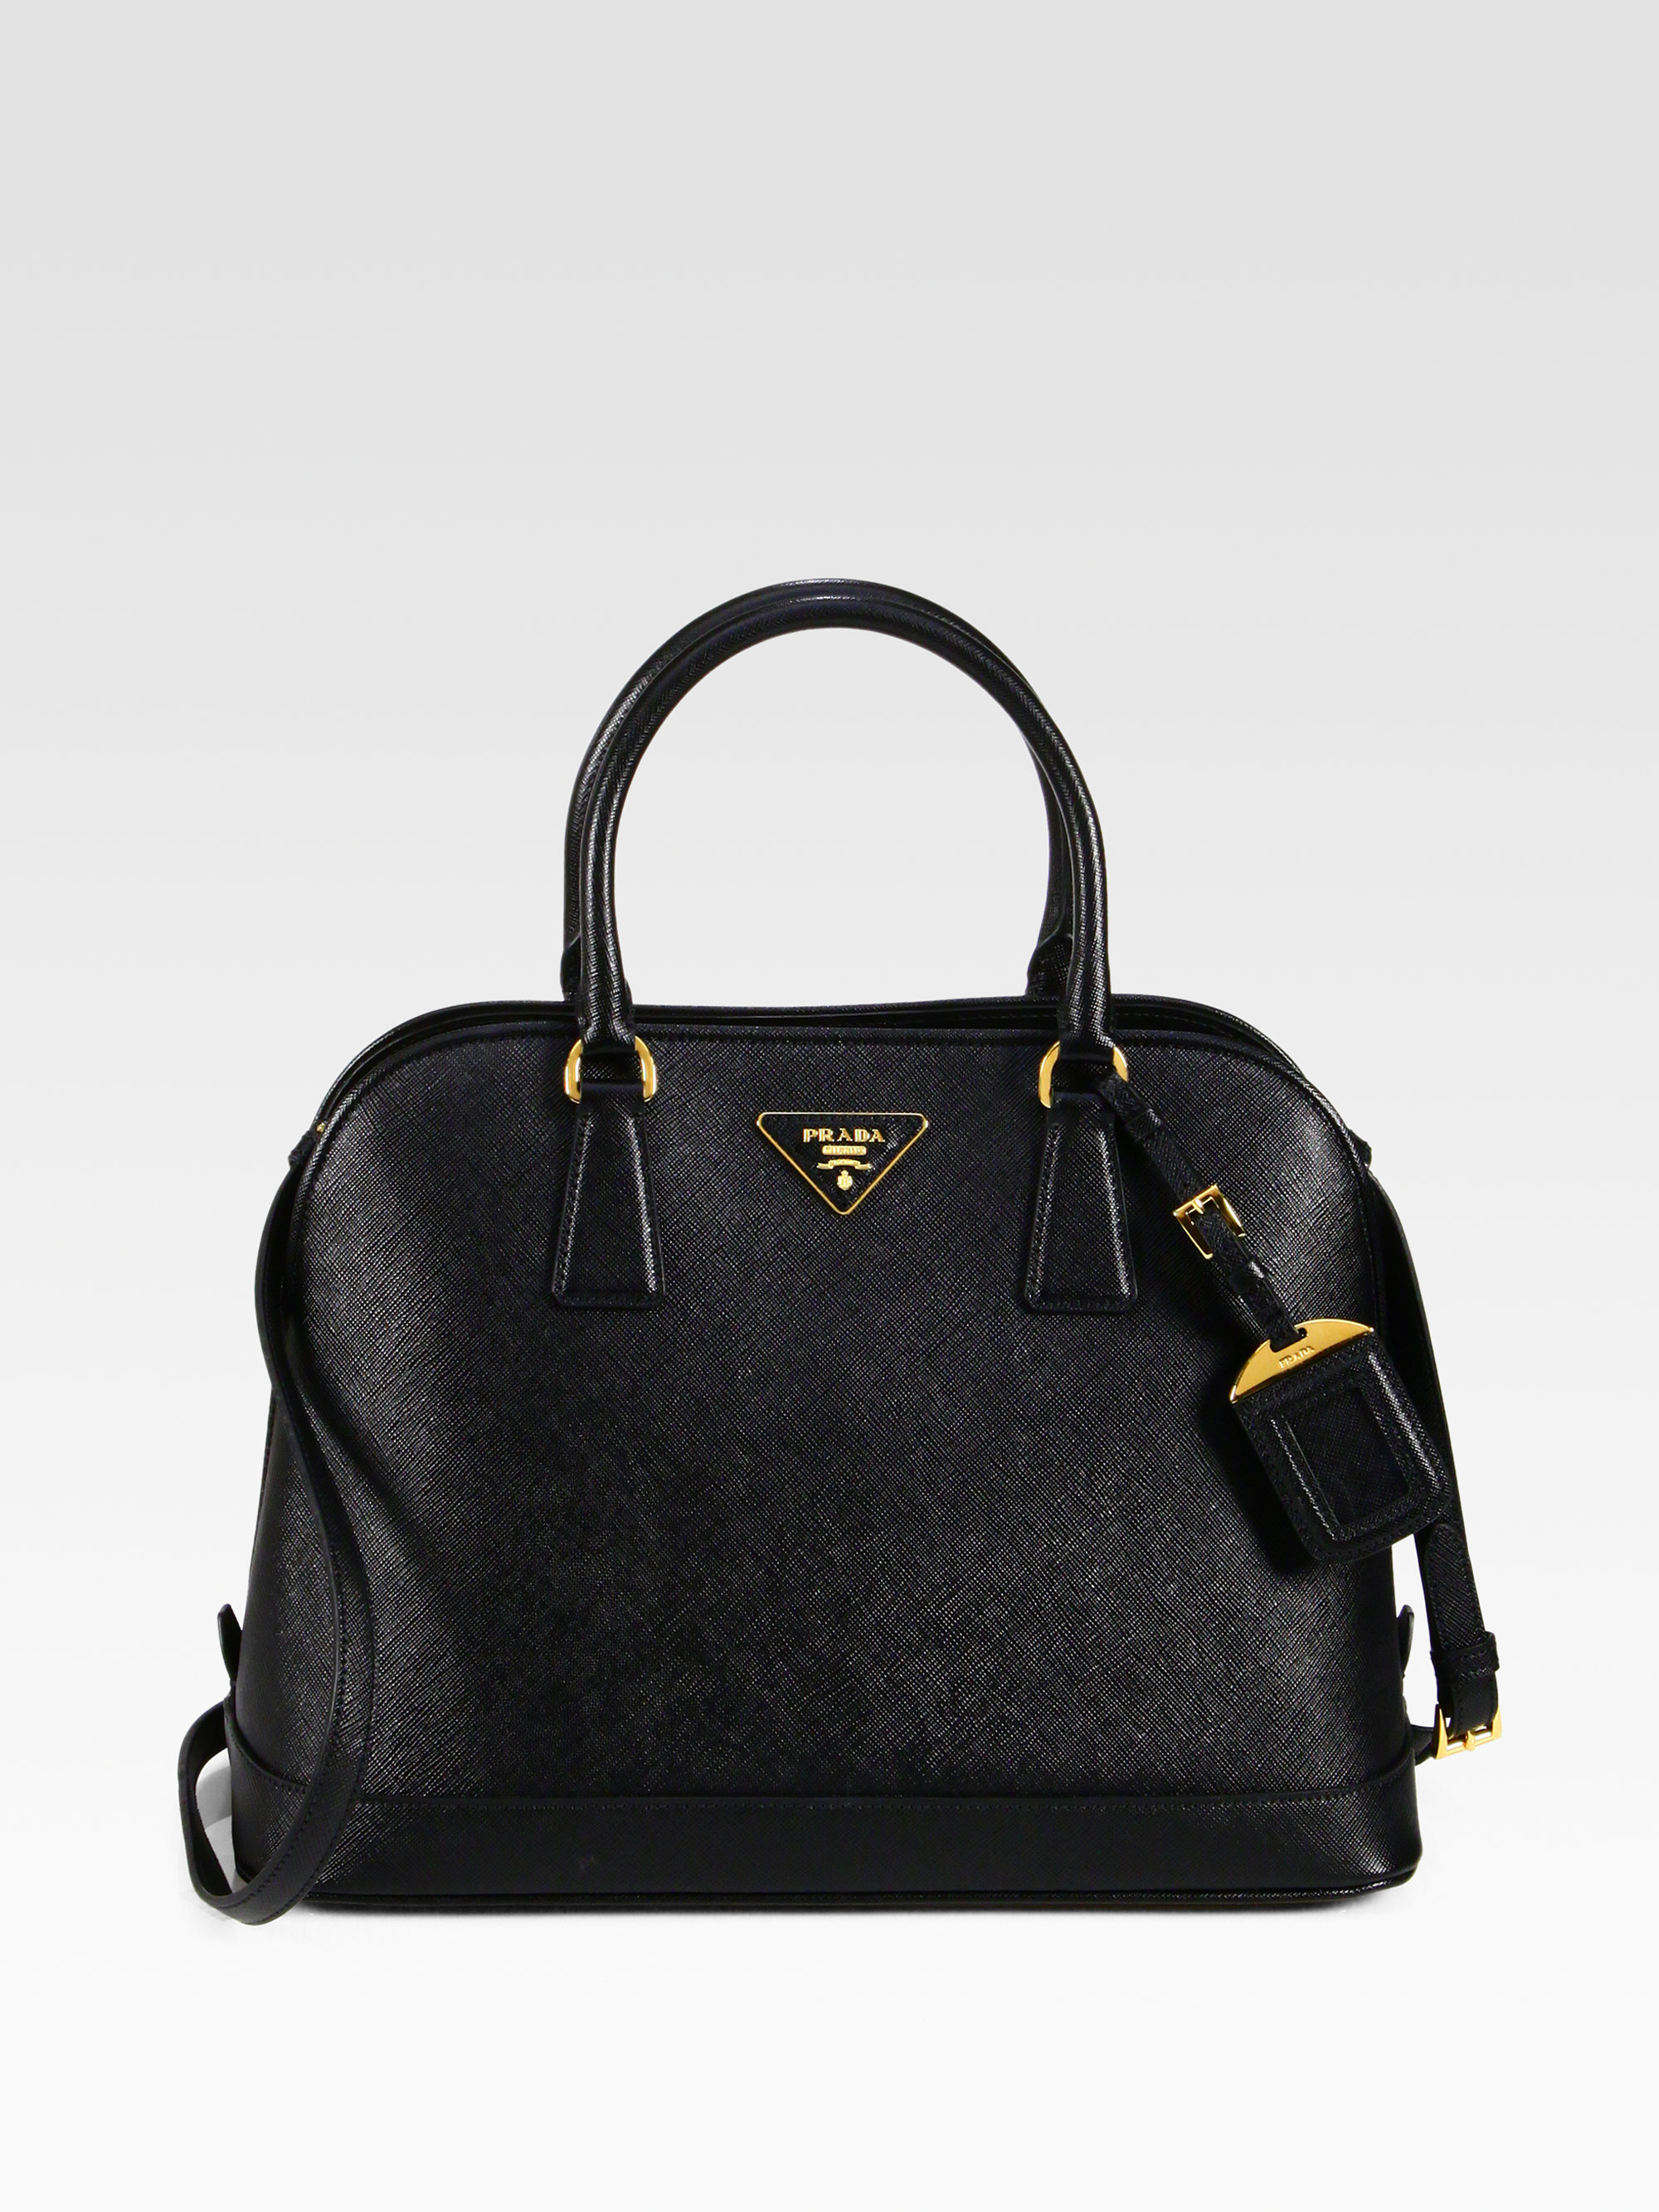 3c1b3506af3f58 ... 50% off lyst prada saffiano promenade open top handle bag in black  b664d 4a331